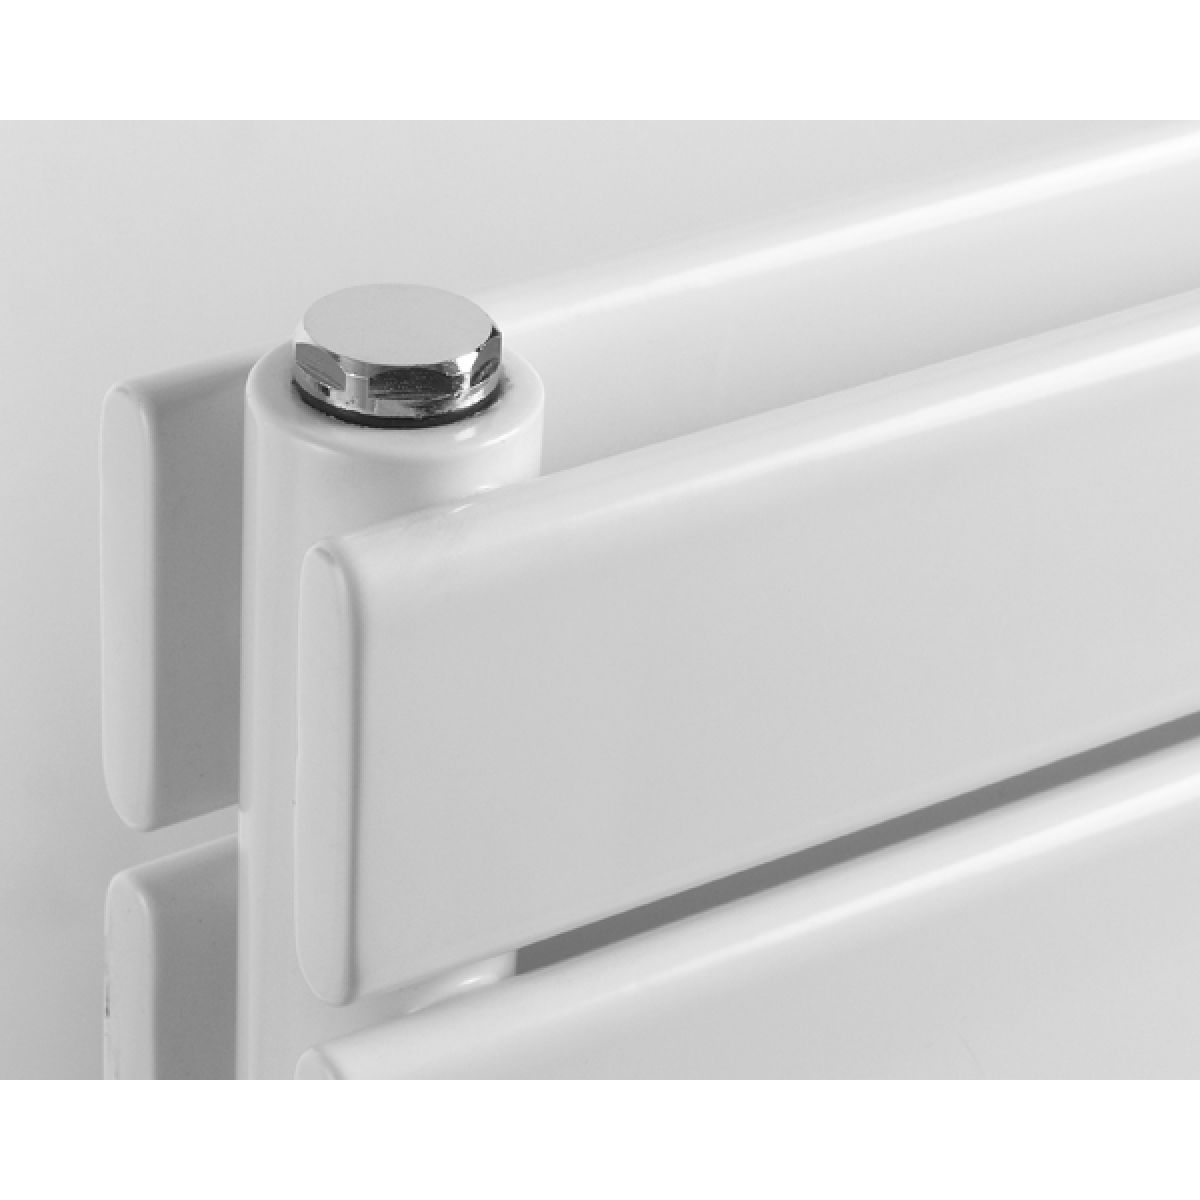 Rione Double White Electric Horizontal Radiator 550 x 400mm Detail 2